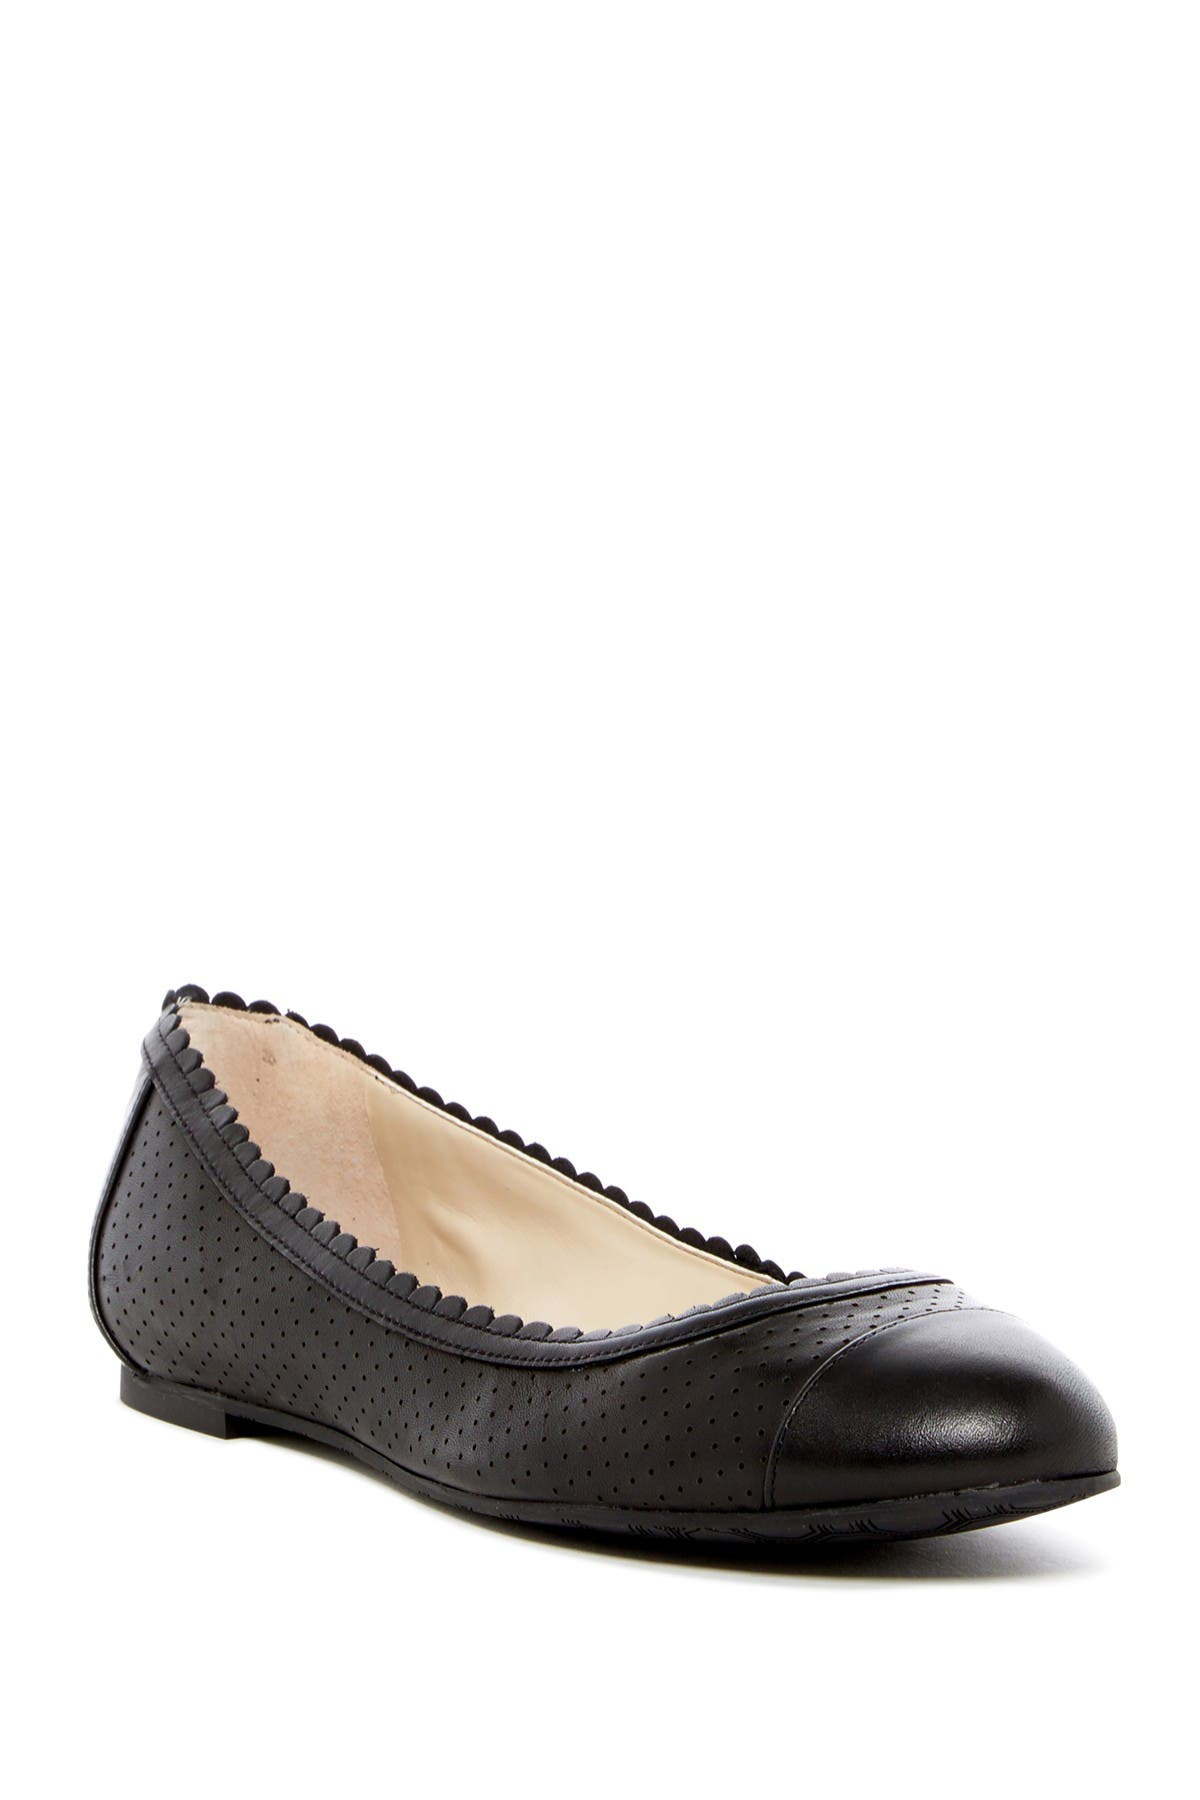 Image of Louise et Cie Eilley Ballet Flat